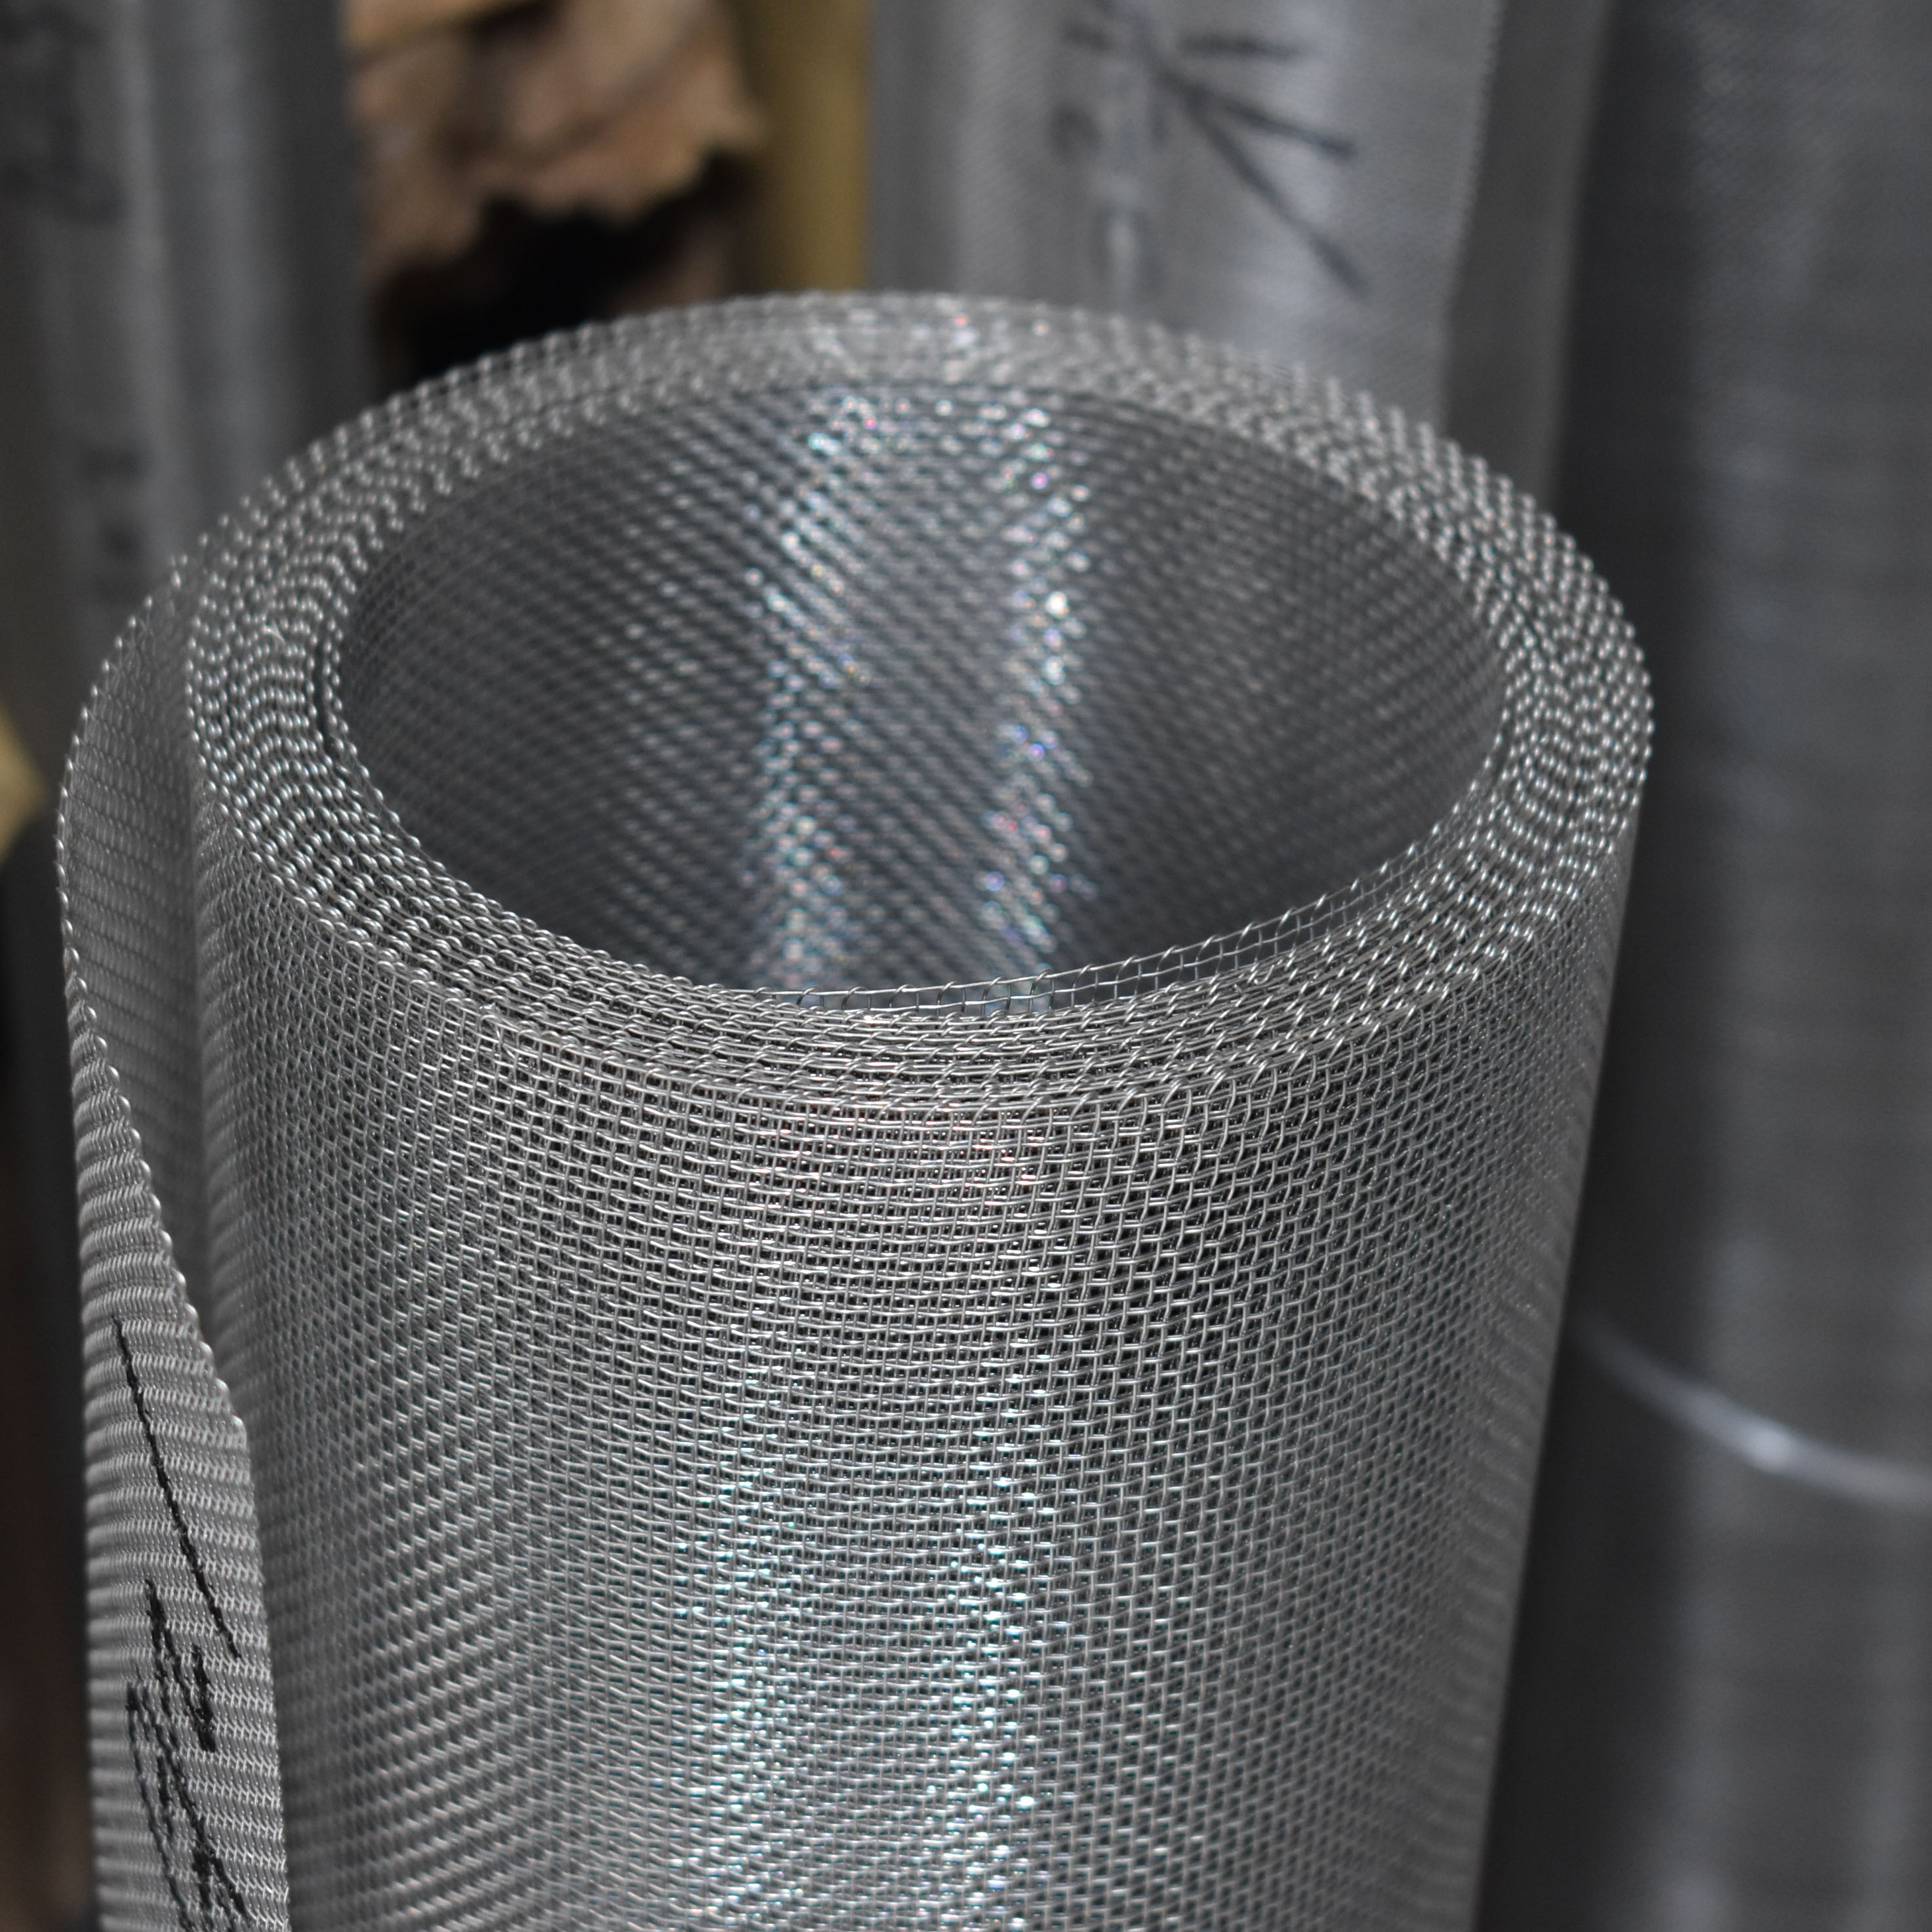 waterproof mesh screen wire mesh screen